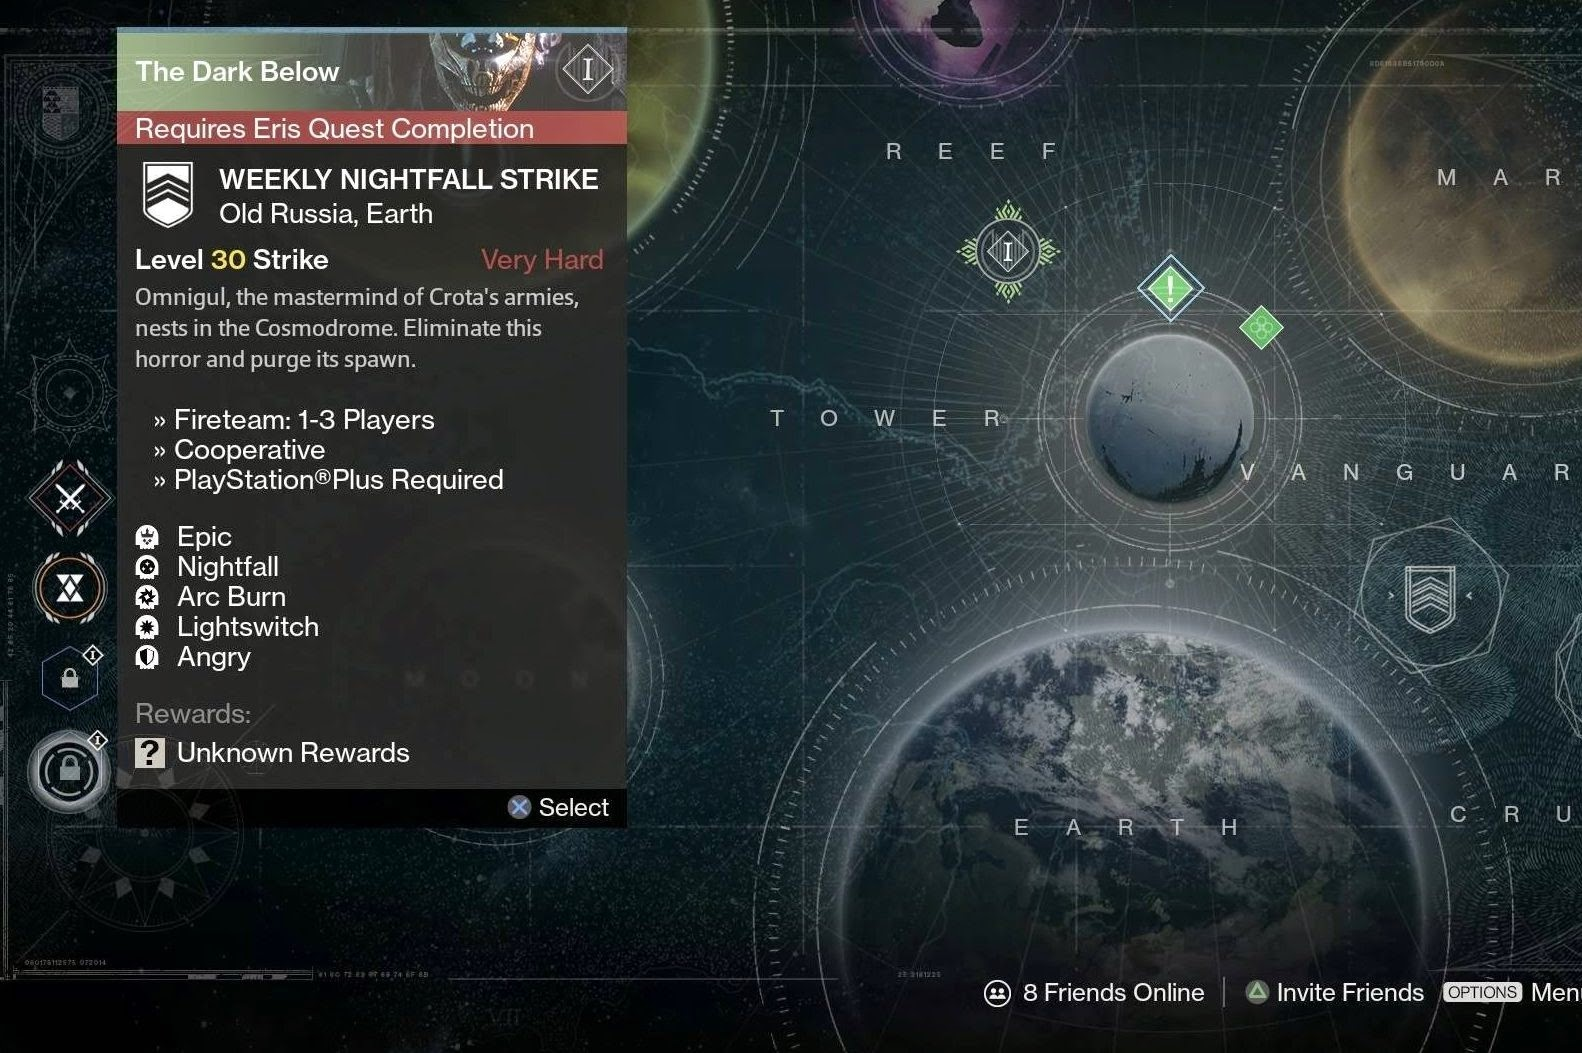 Matchmaking for nightfall strike